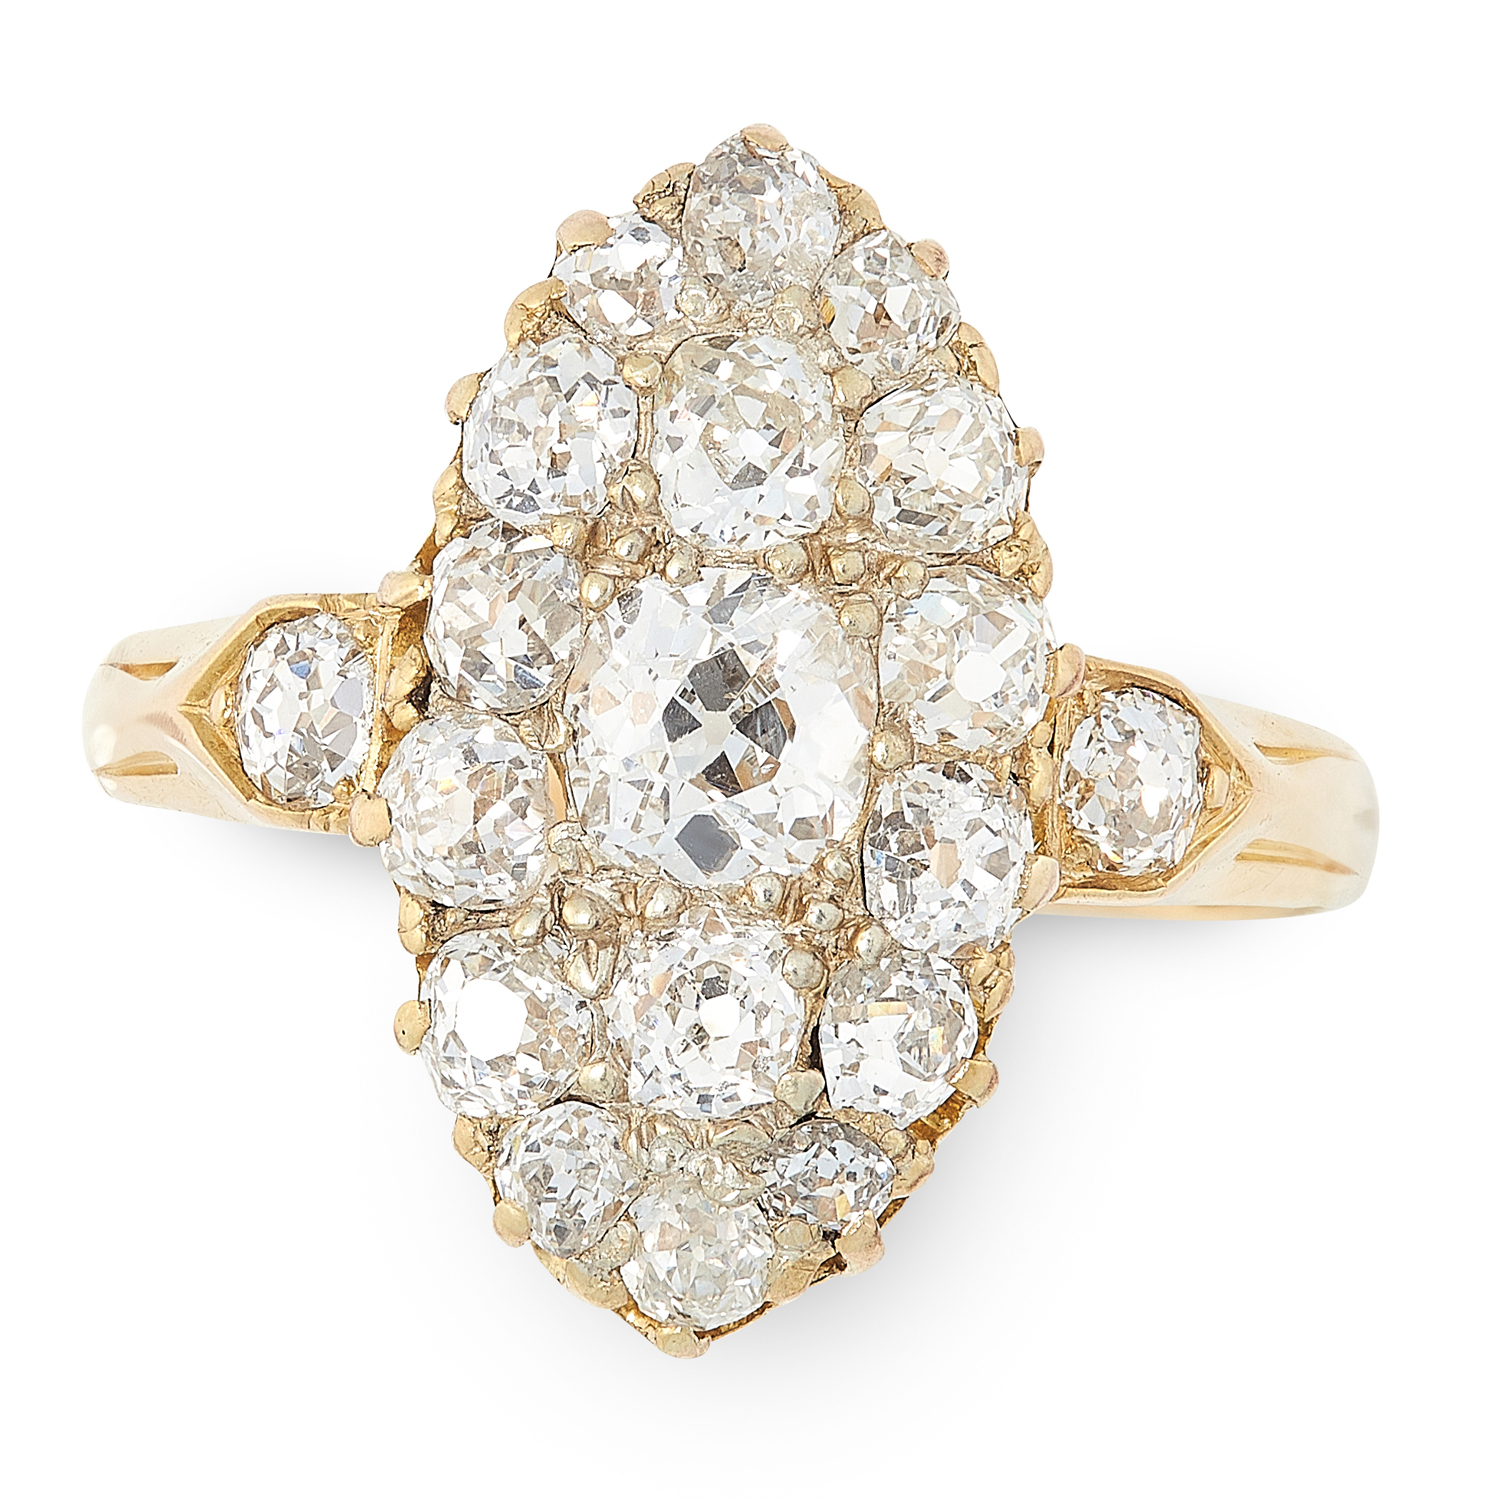 AN ANTIQUE DIAMOND CLUSTER RING in high carat yellow gold, the navette face set with a cluster of